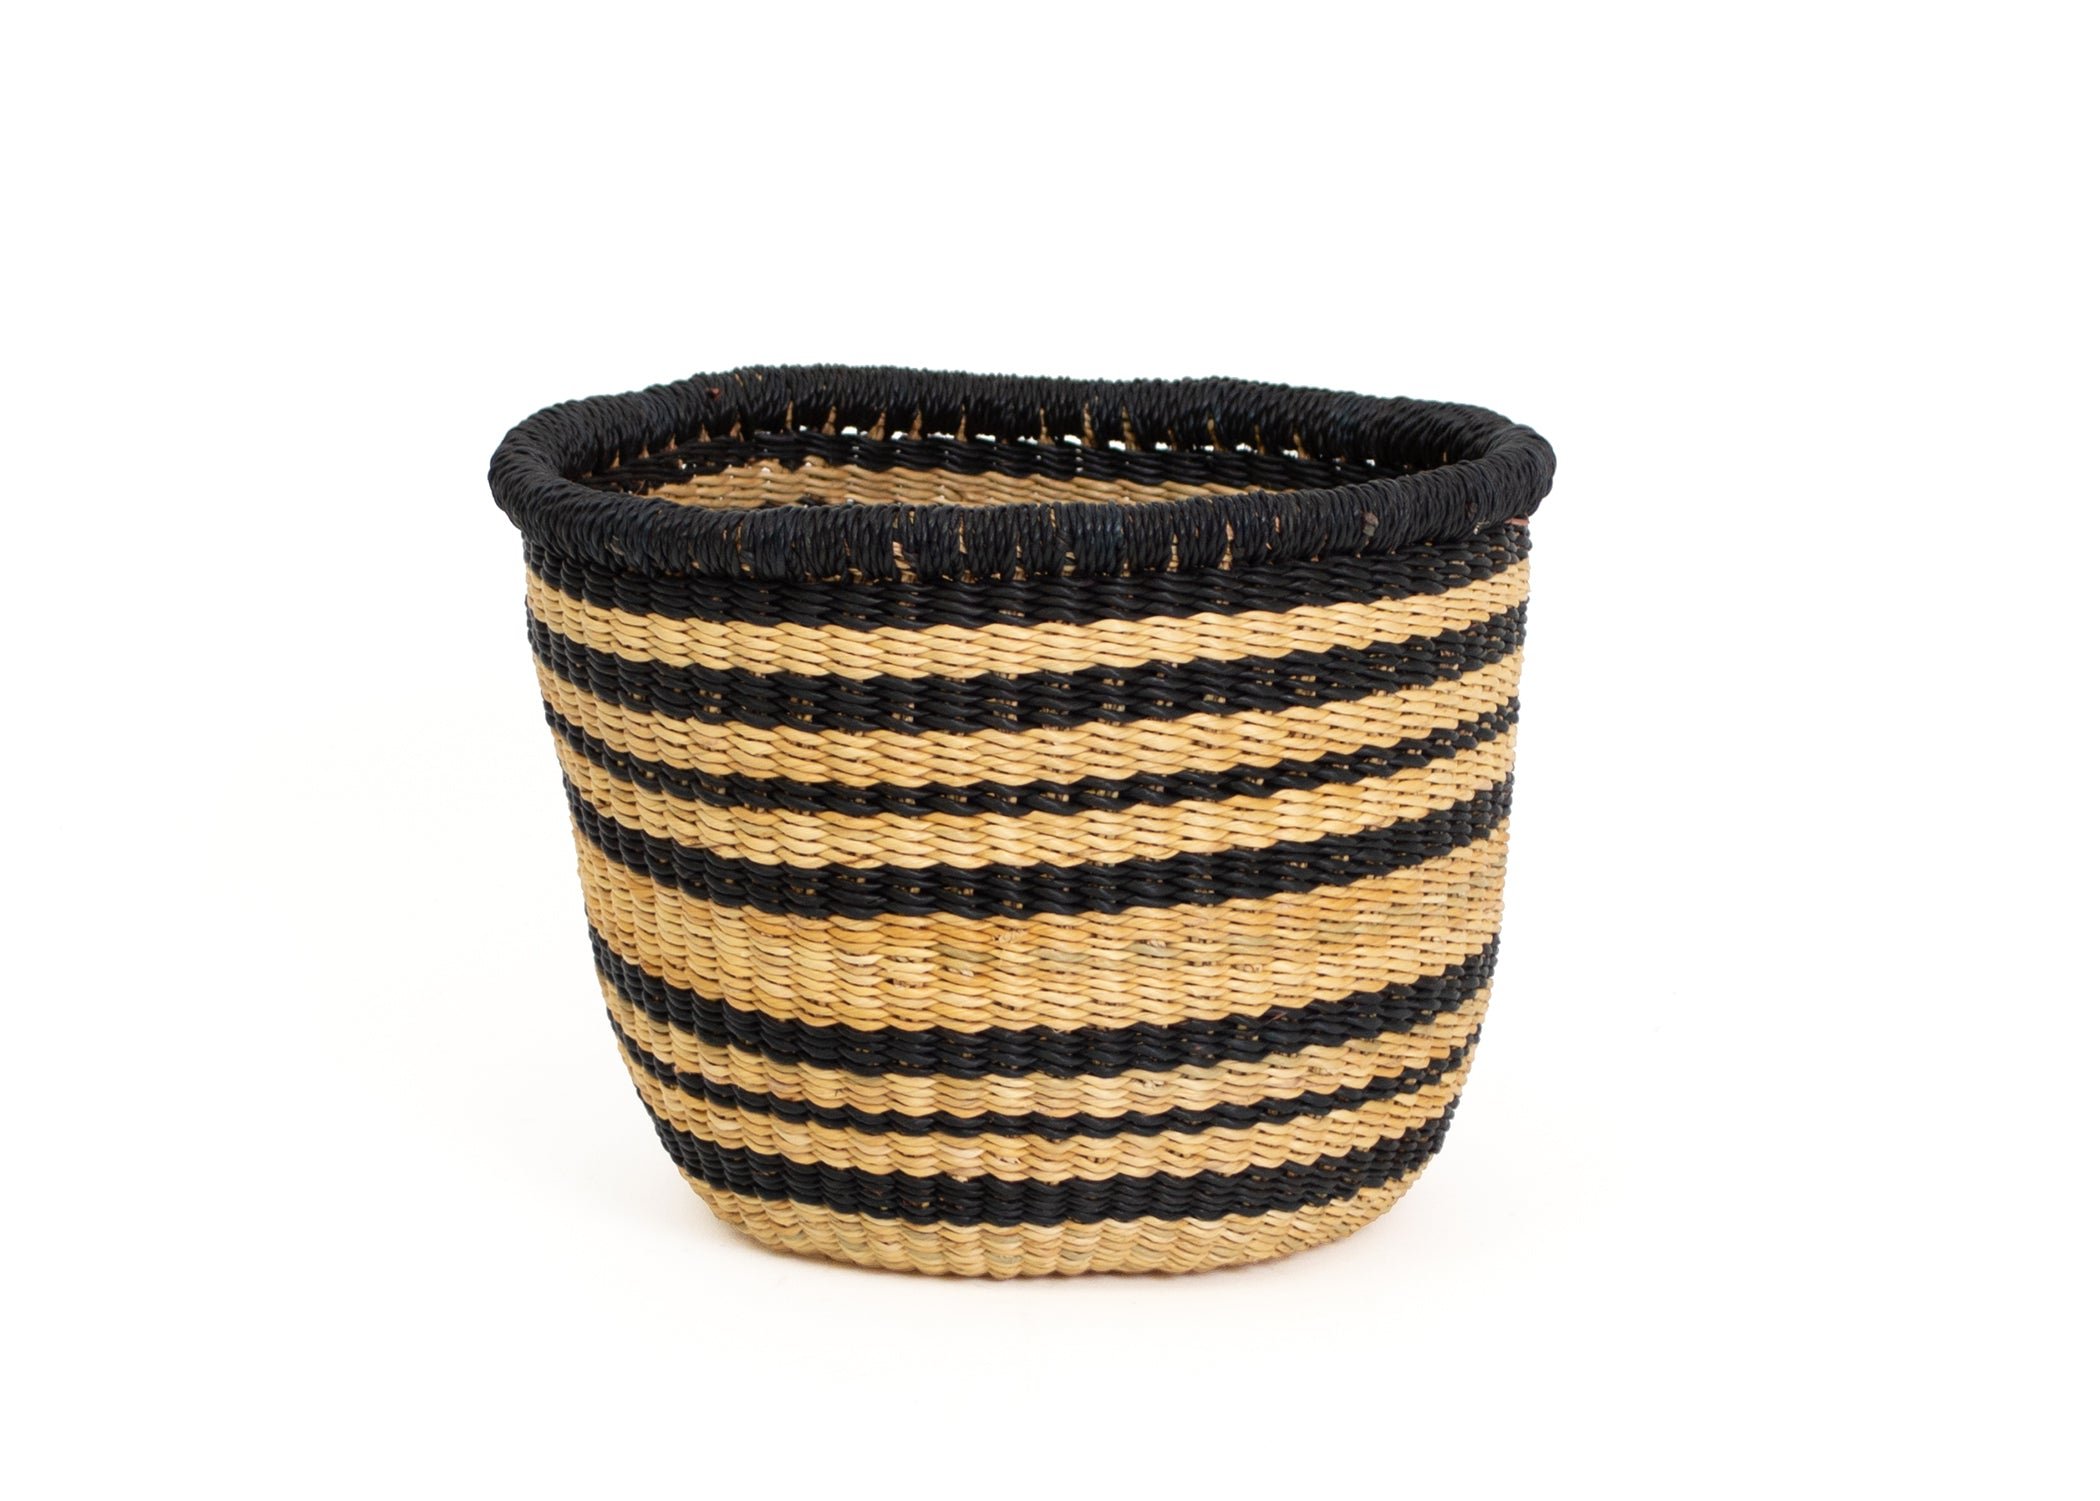 "5"" Small Striped Black Grass Planter - KAZI - Artisan made high quality home decor and wall art"